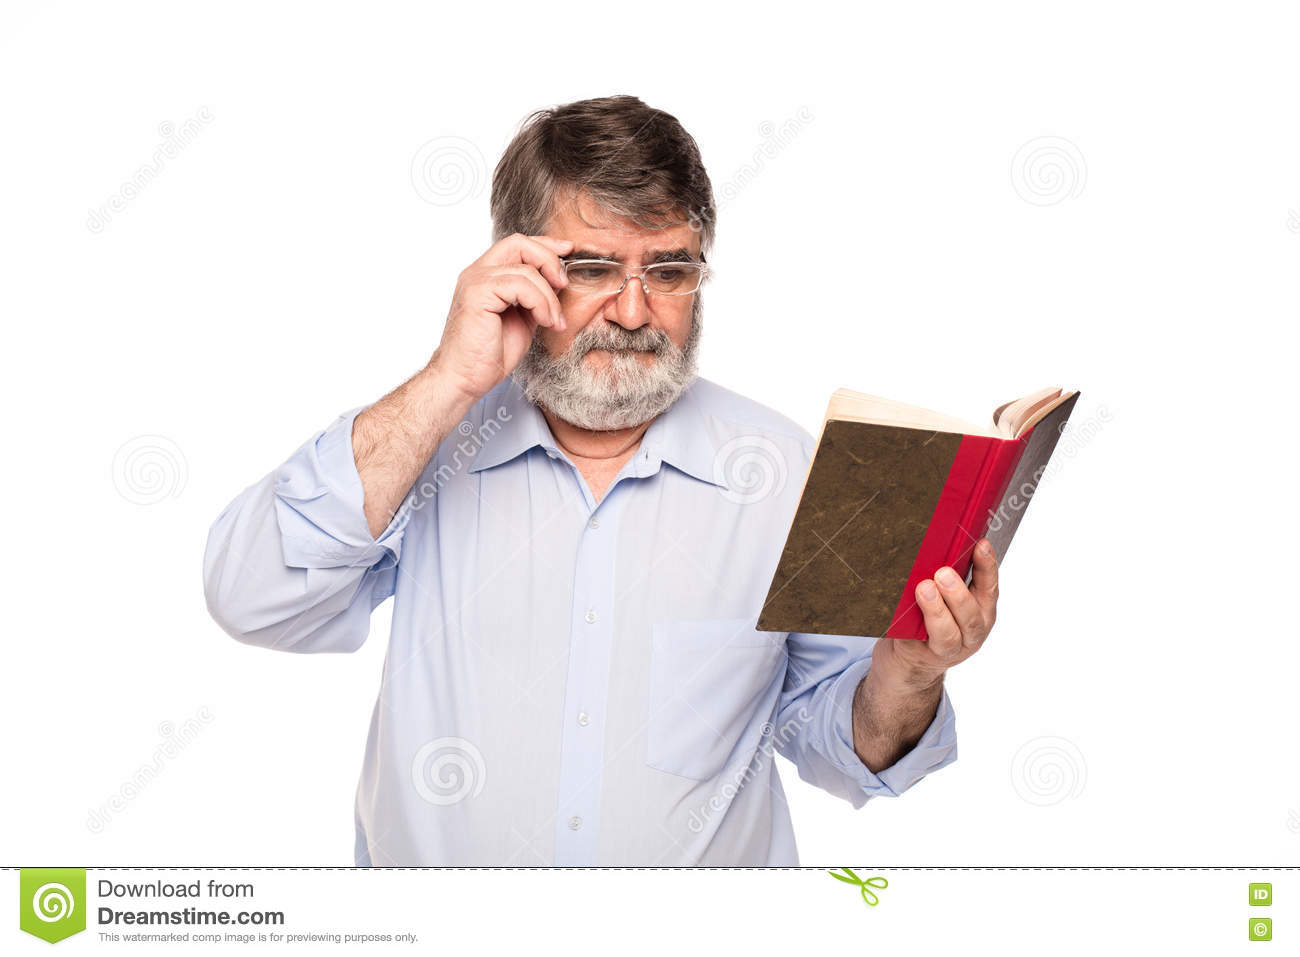 Old Man With Glasses Reading A Book Stock Image - Image of looking, elderly:  71442223